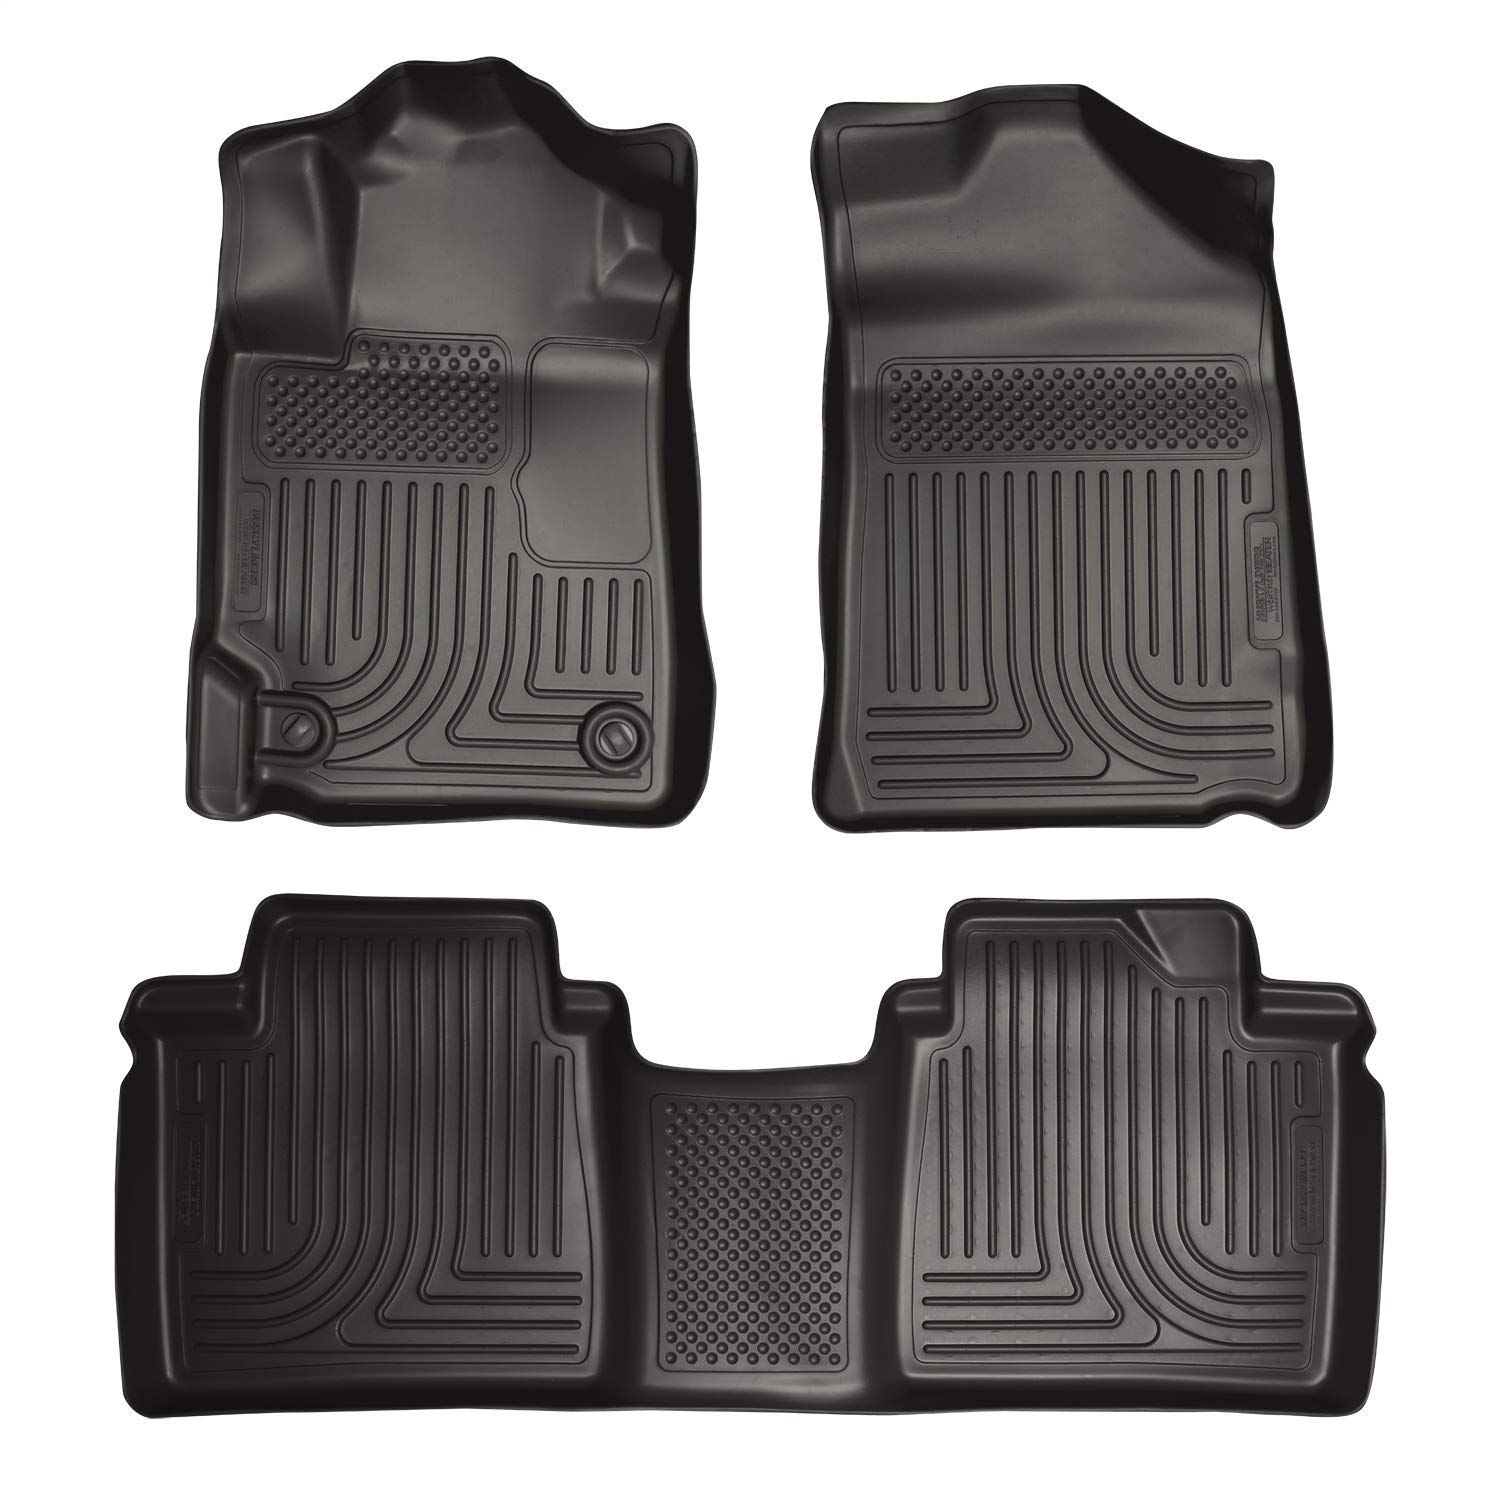 Husky Liners Fits 2007-11 Toyota Camry Weatherbeater Front /& 2nd Seat Floor Mats